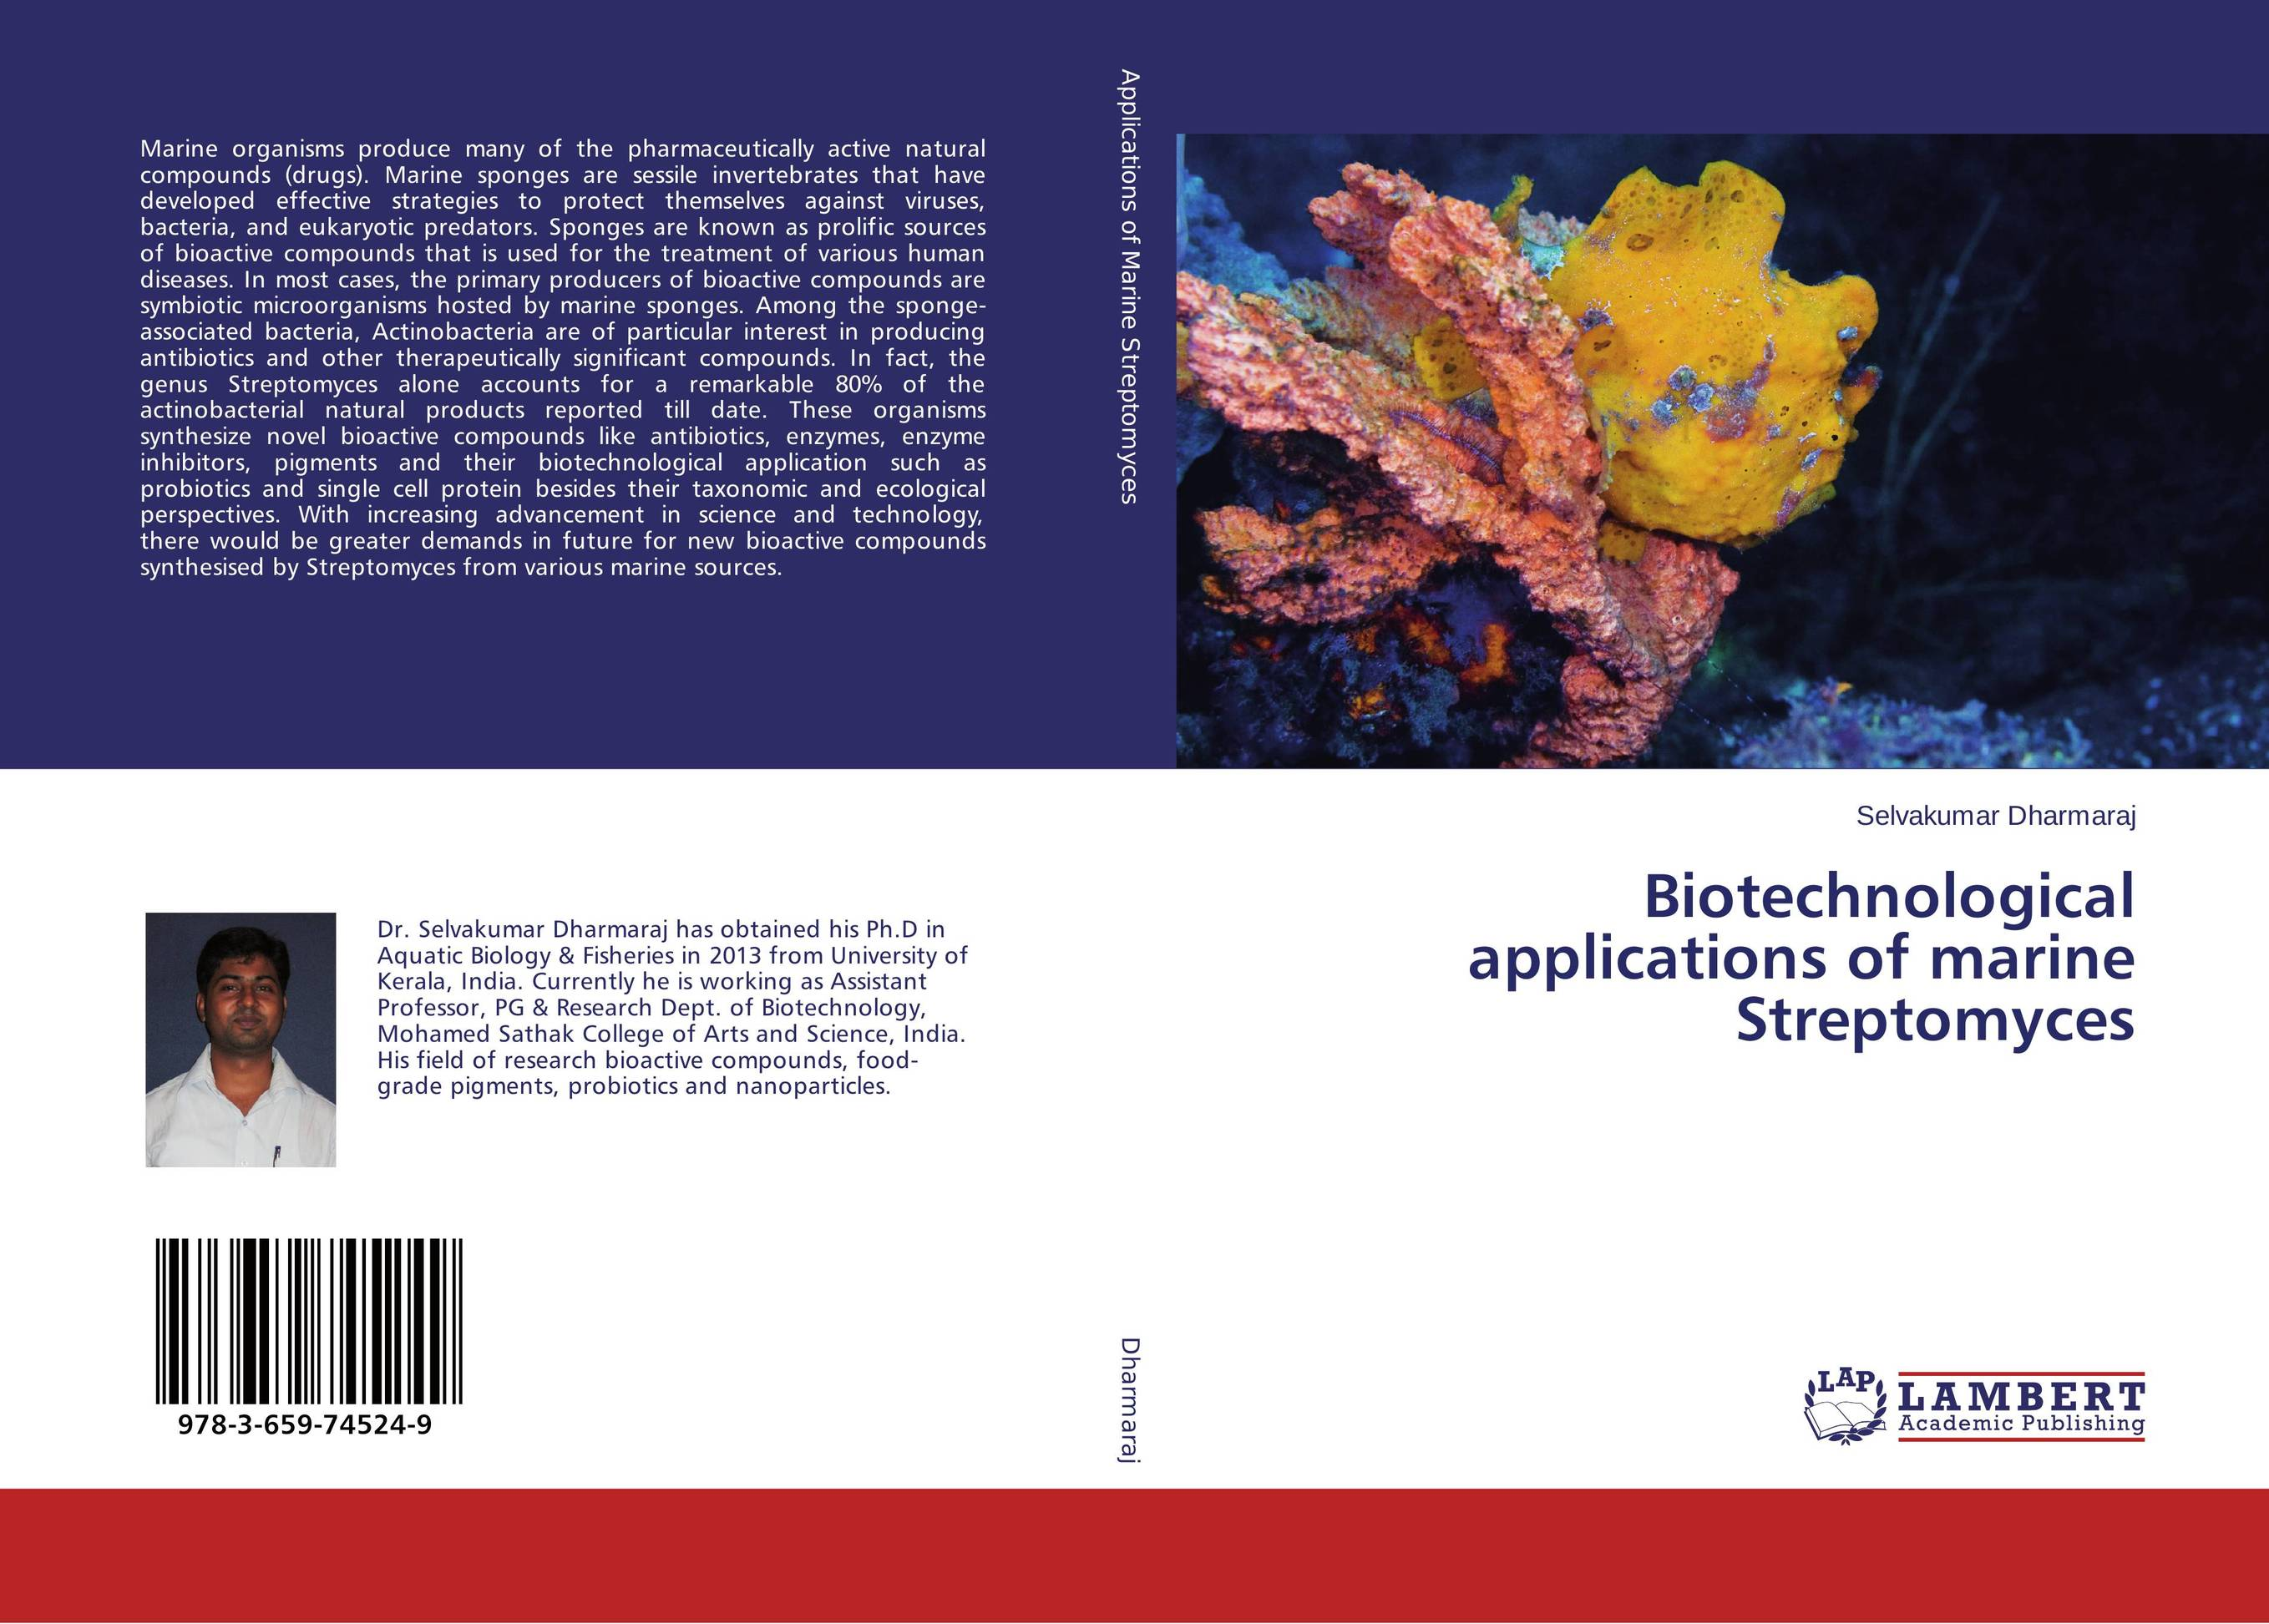 Biotechnological applications of marine Streptomyces marine pharmaceutical compounds